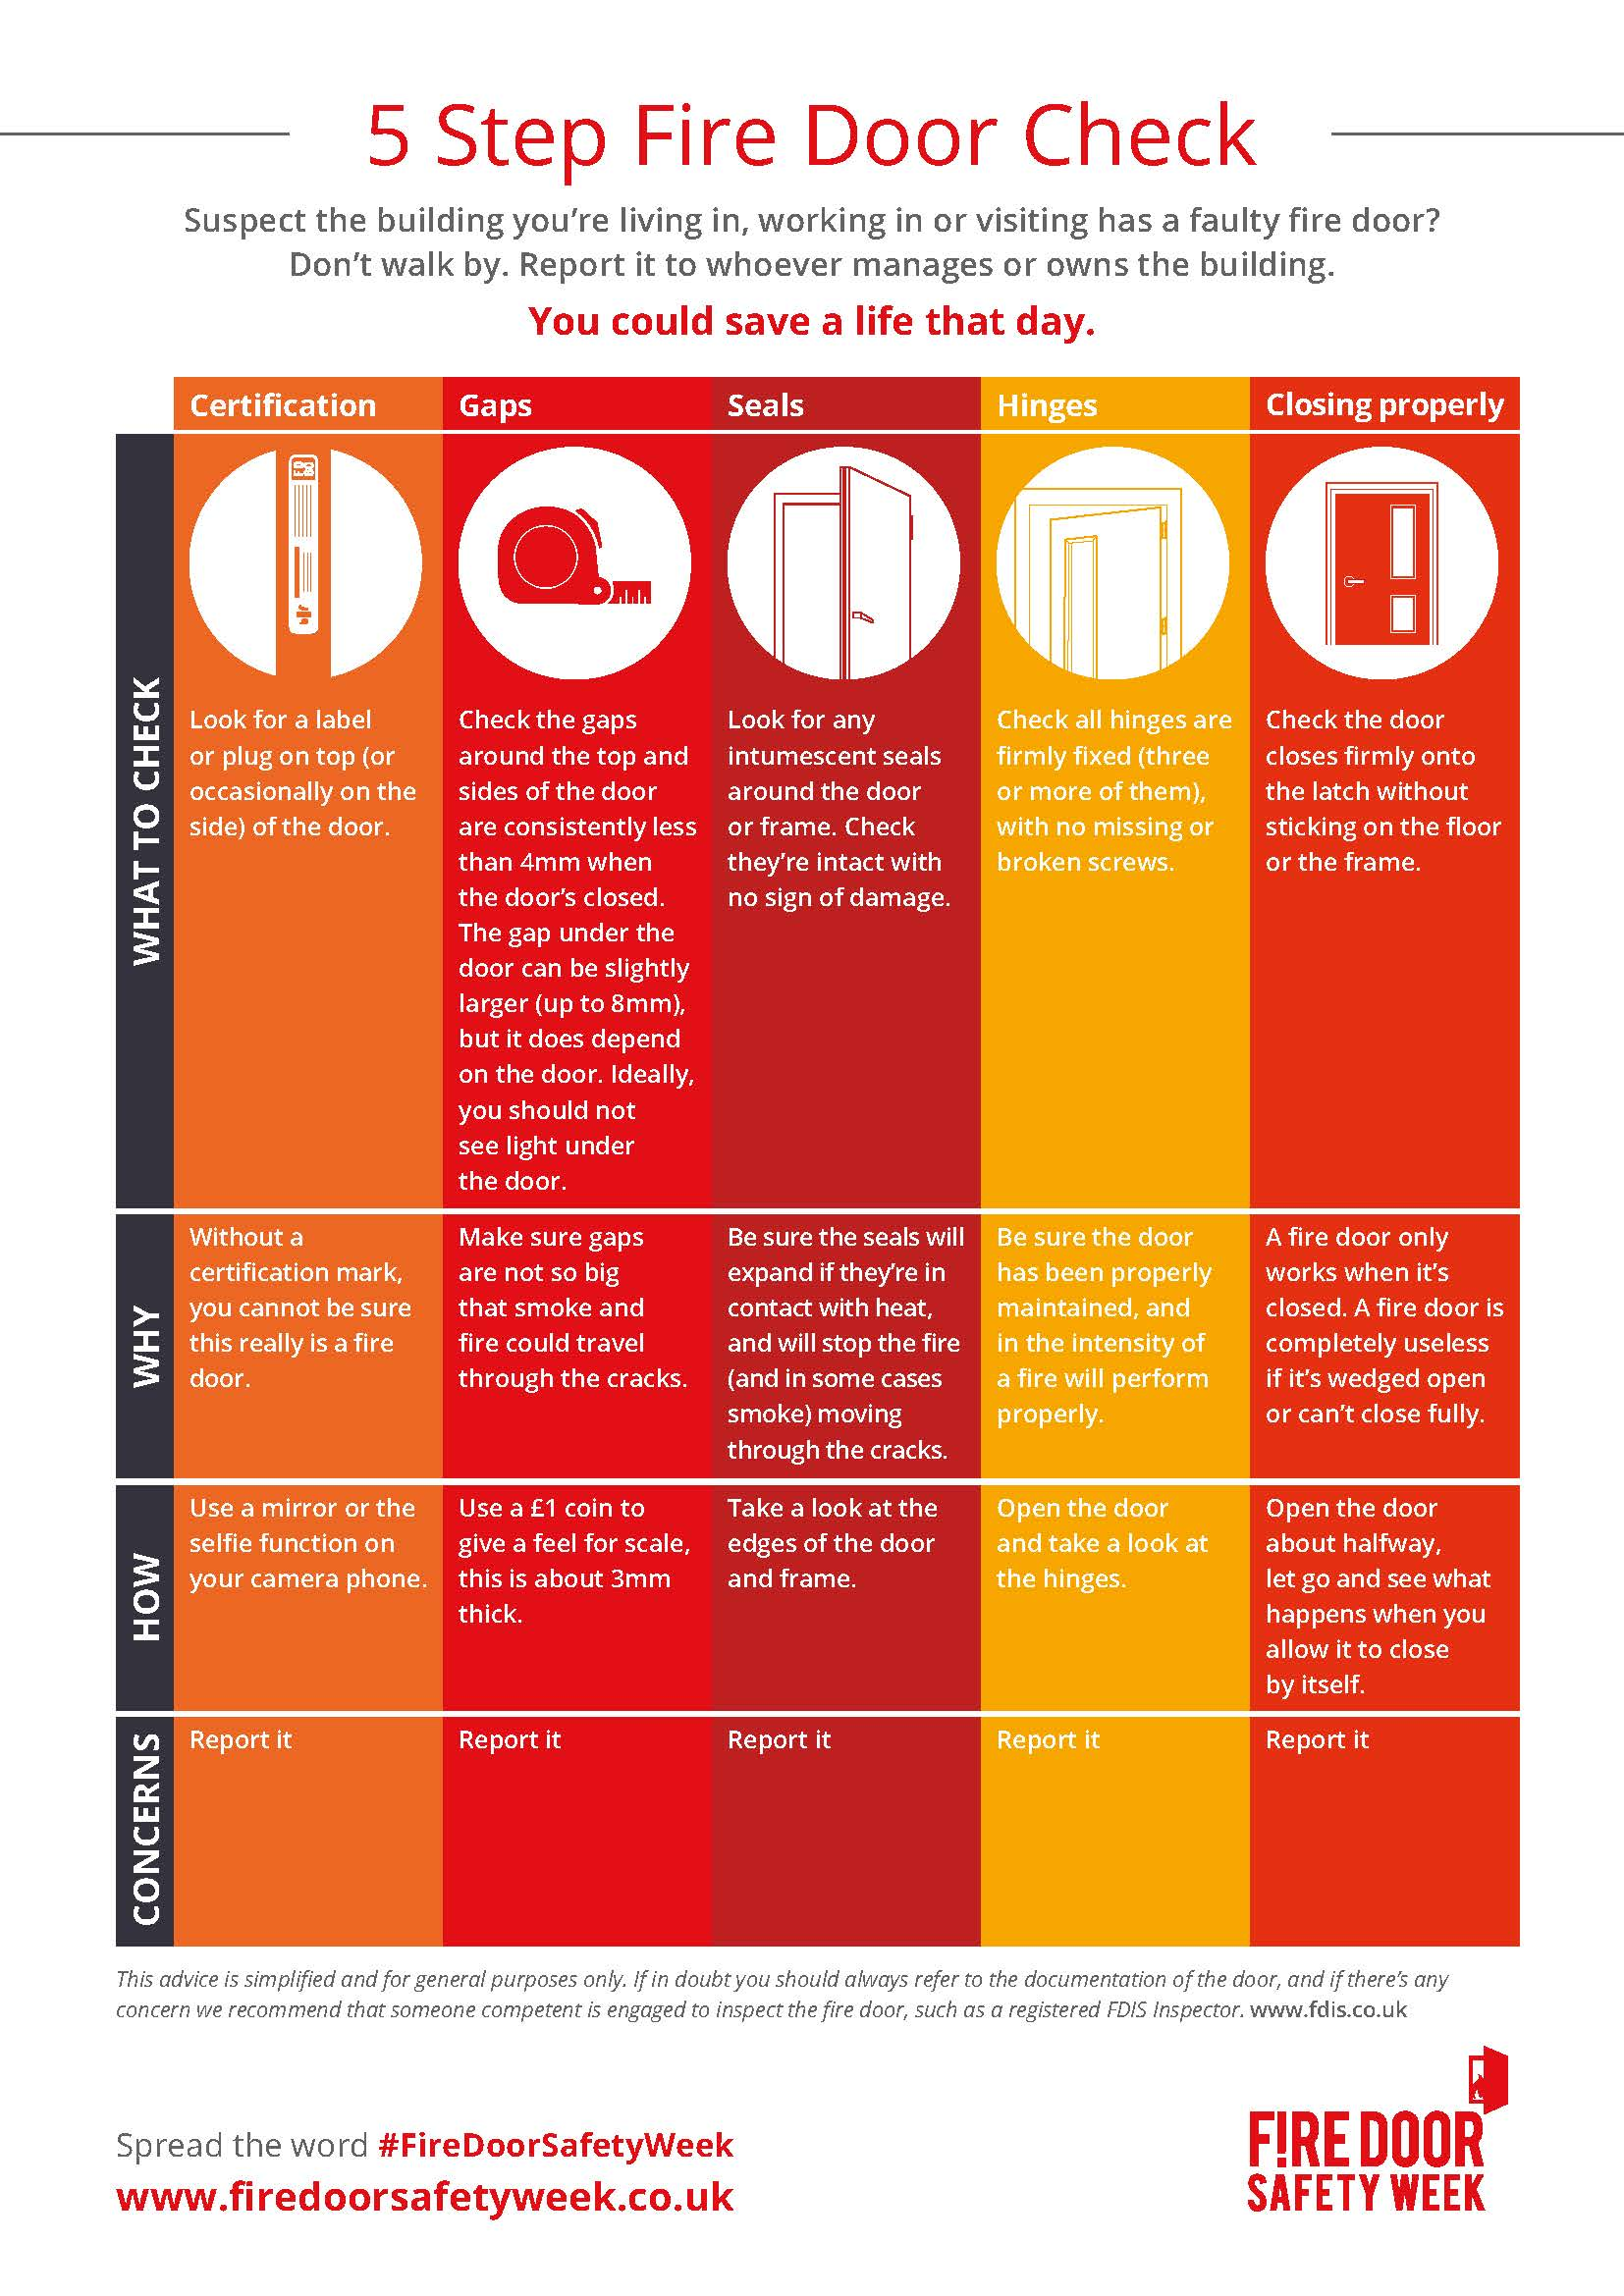 Fire Door Checklist 5 Steps For Responsible Persons